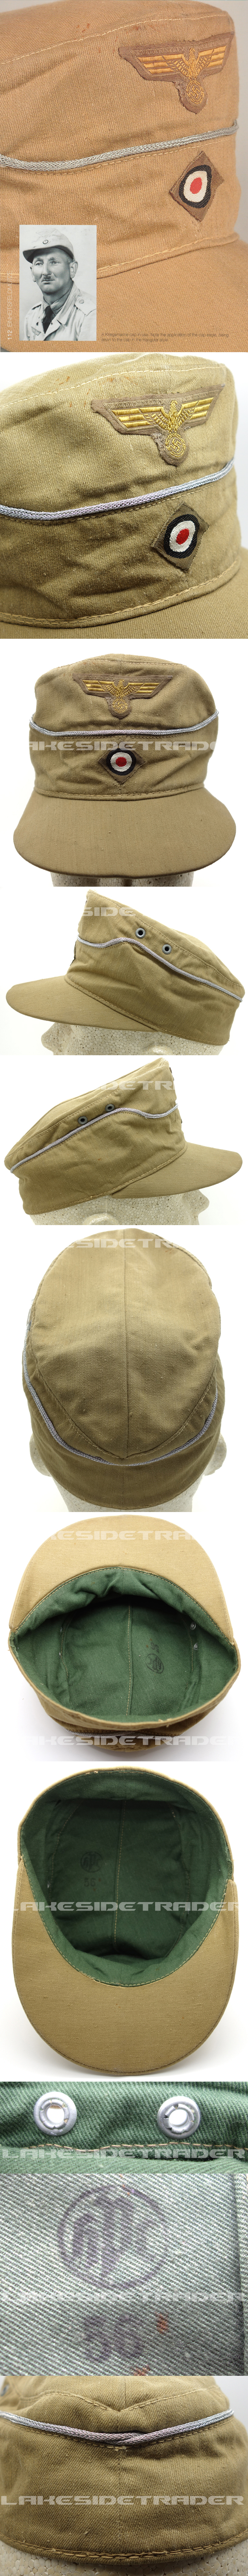 THE Textbook Example - Navy Officers M41 Tropical Field Cap by HPC